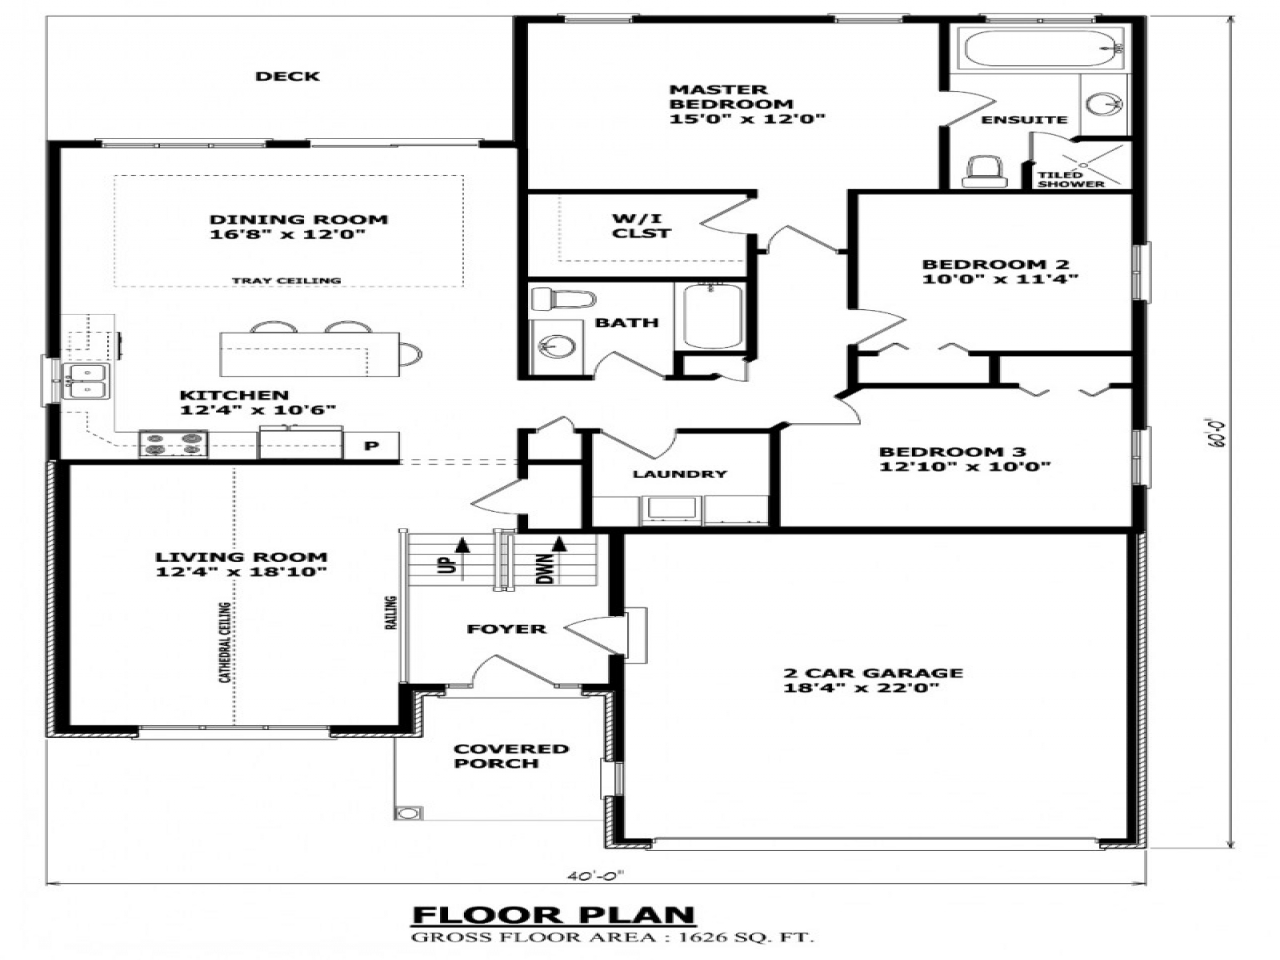 Canadian house plans french canadian style house plans for Cdn house plans